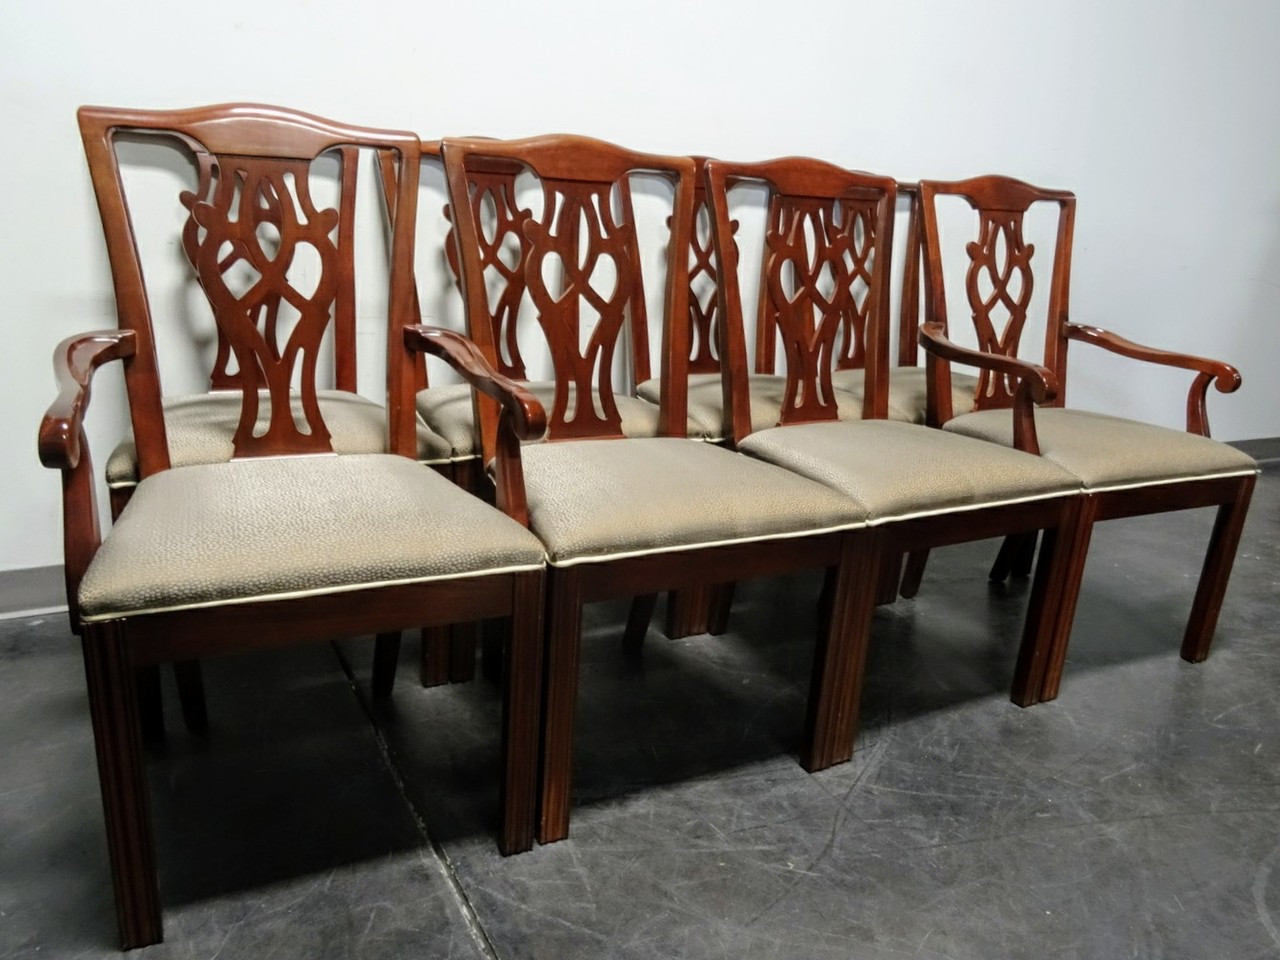 SOLD OUT DREXEL Chippendale StraightLeg Mahogany Dining Chairs